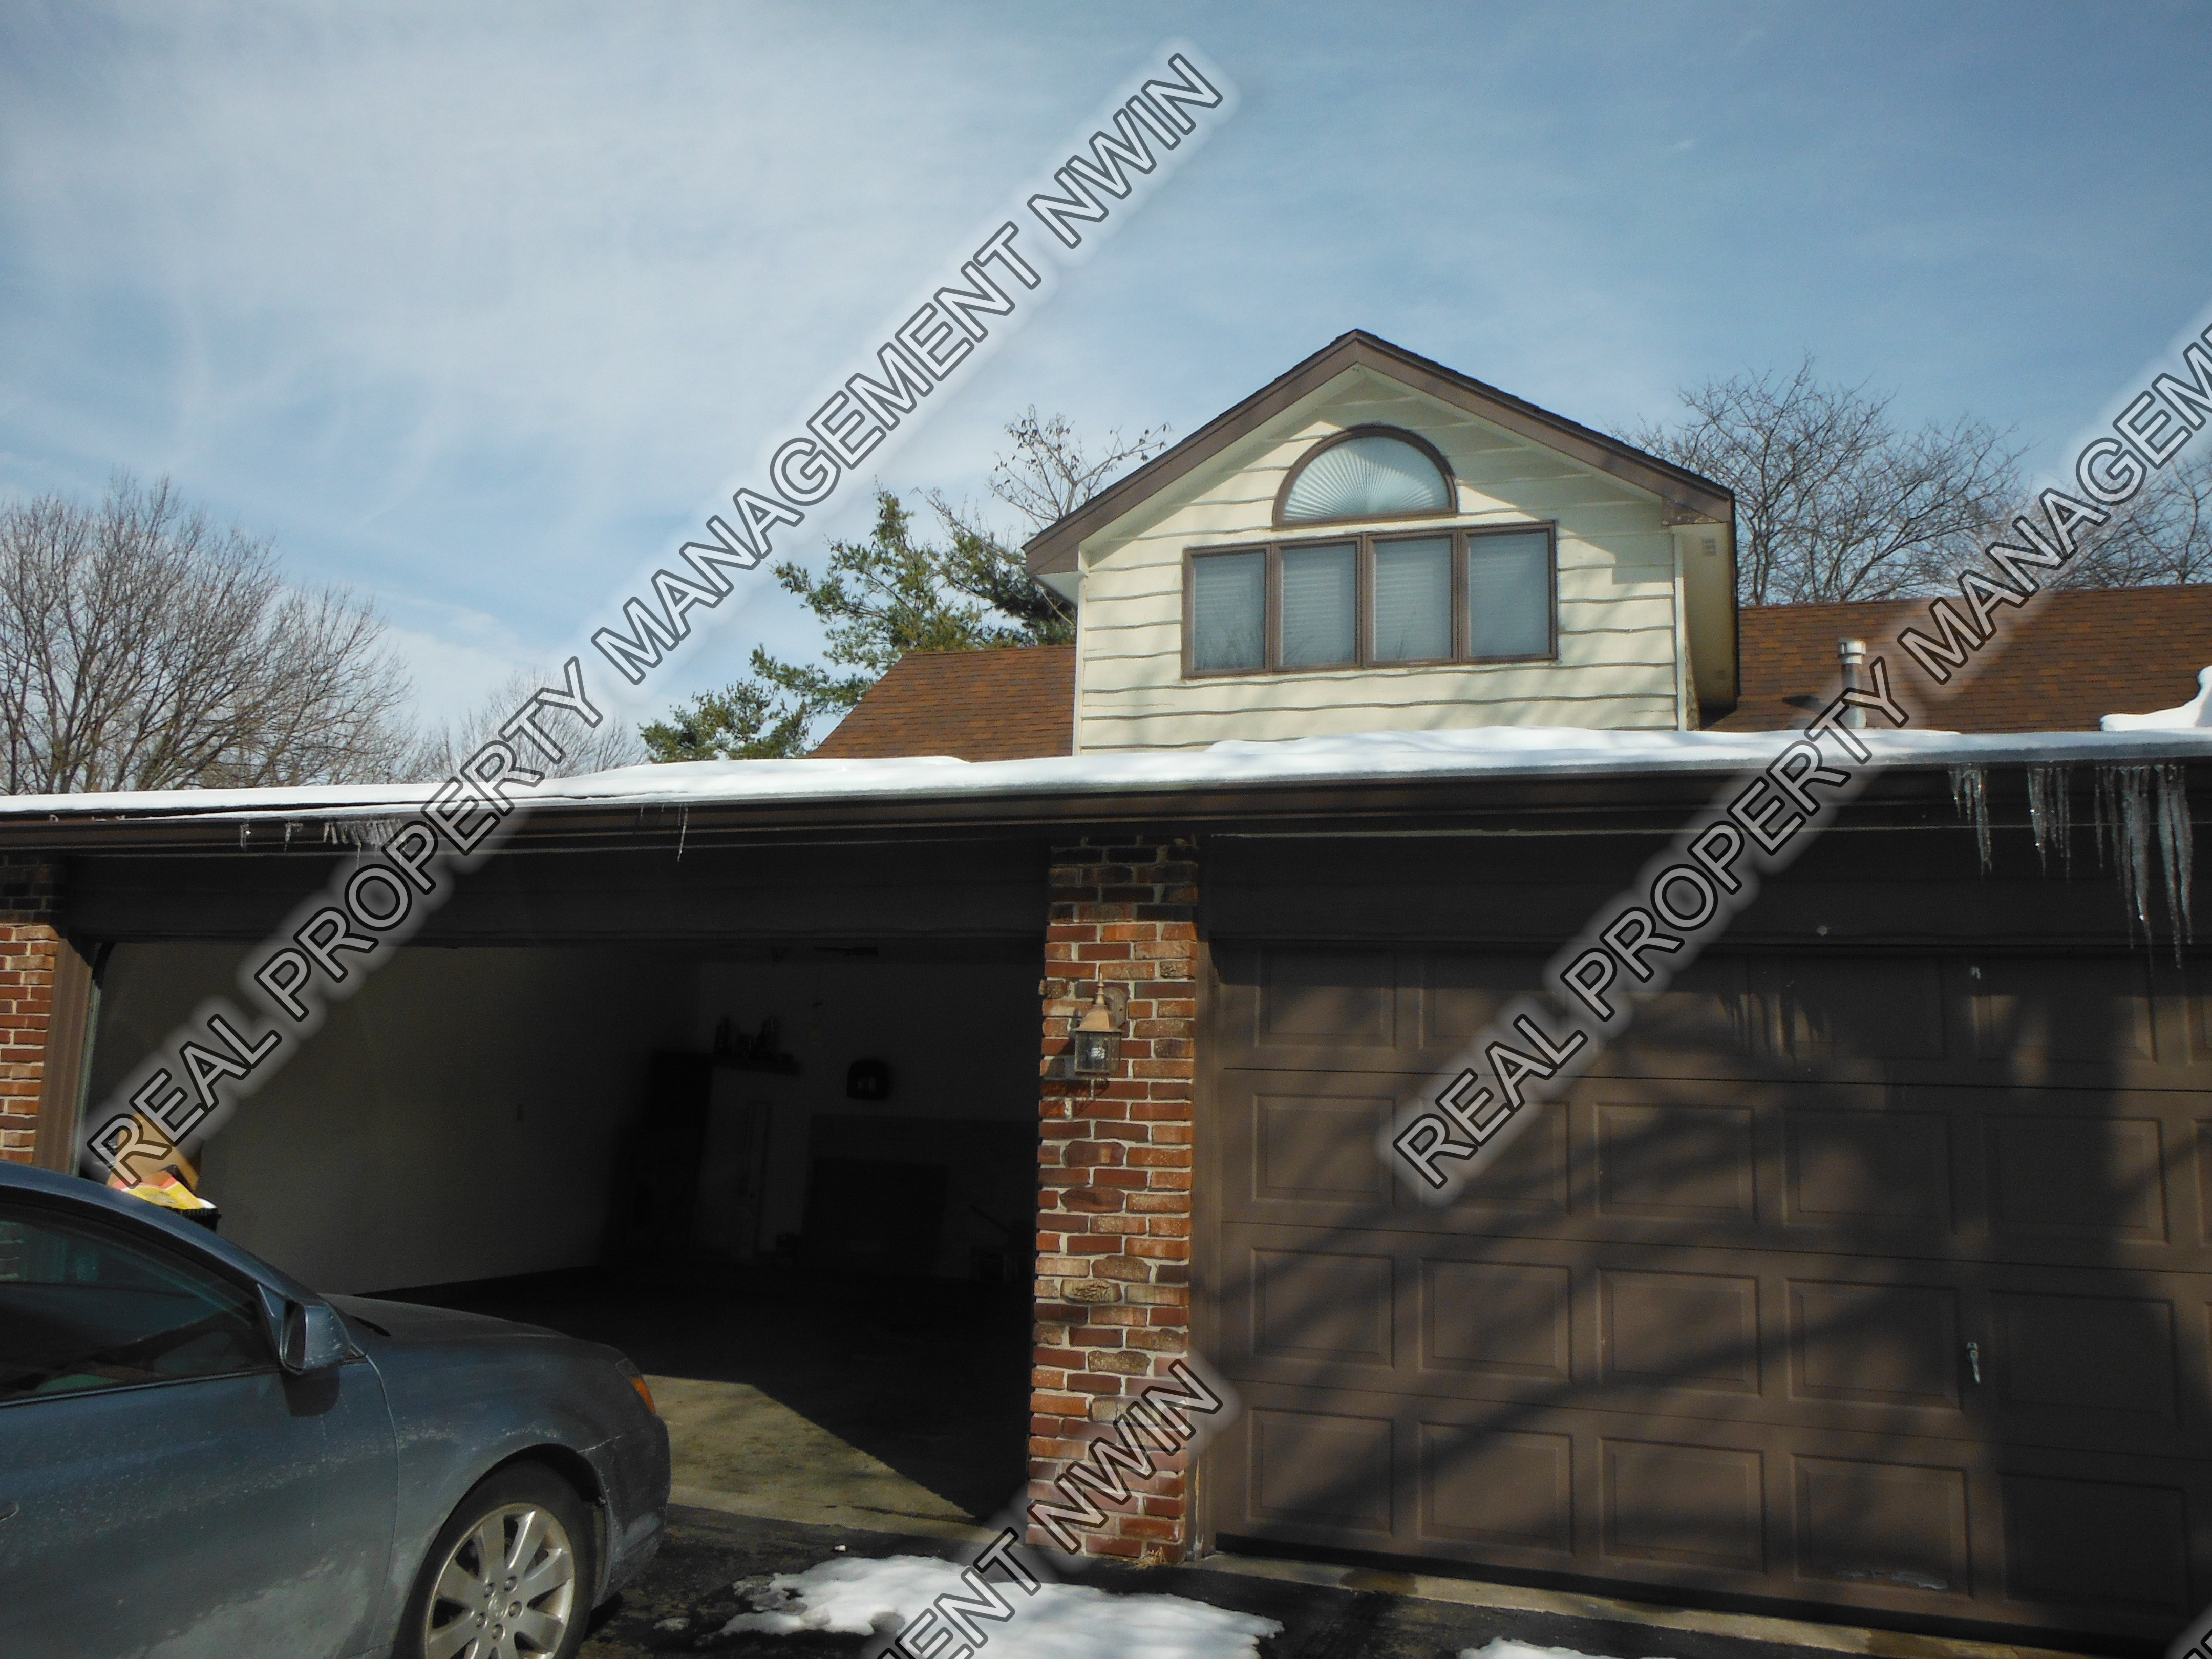 Townhouse for Rent in Schererville